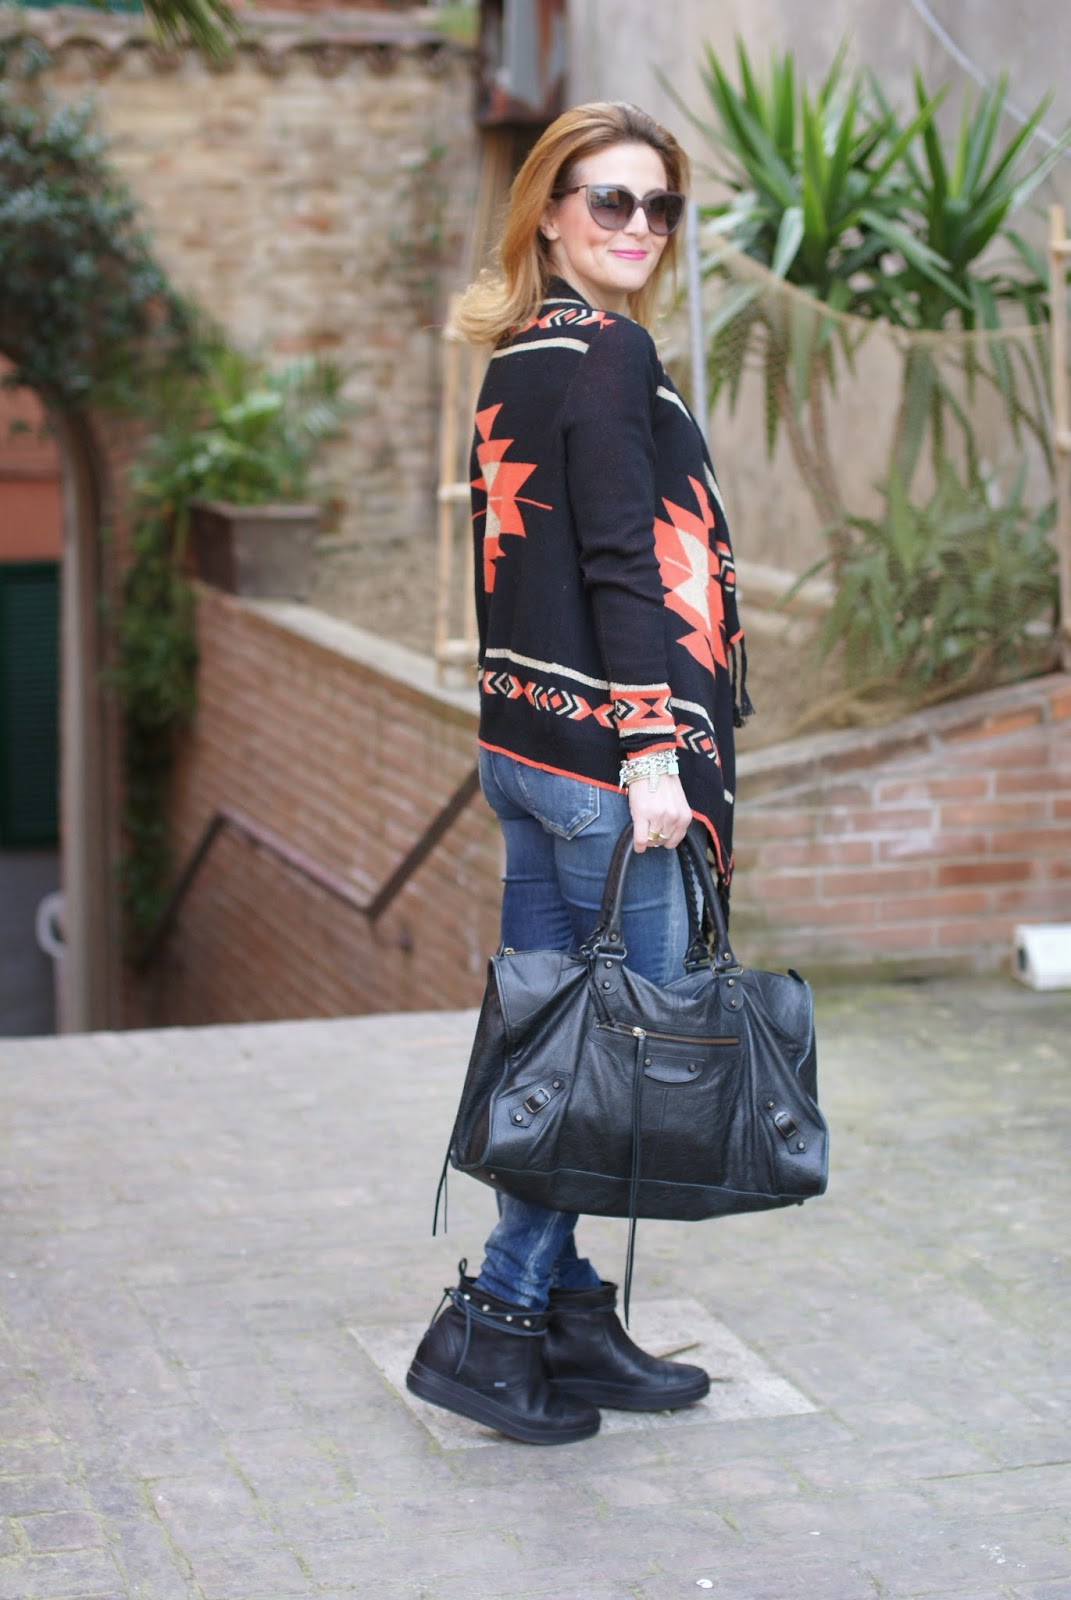 balenciaga work bag, ruco line ariel boots, aztec cardigan, Fashion and Cookies, fashion blogger